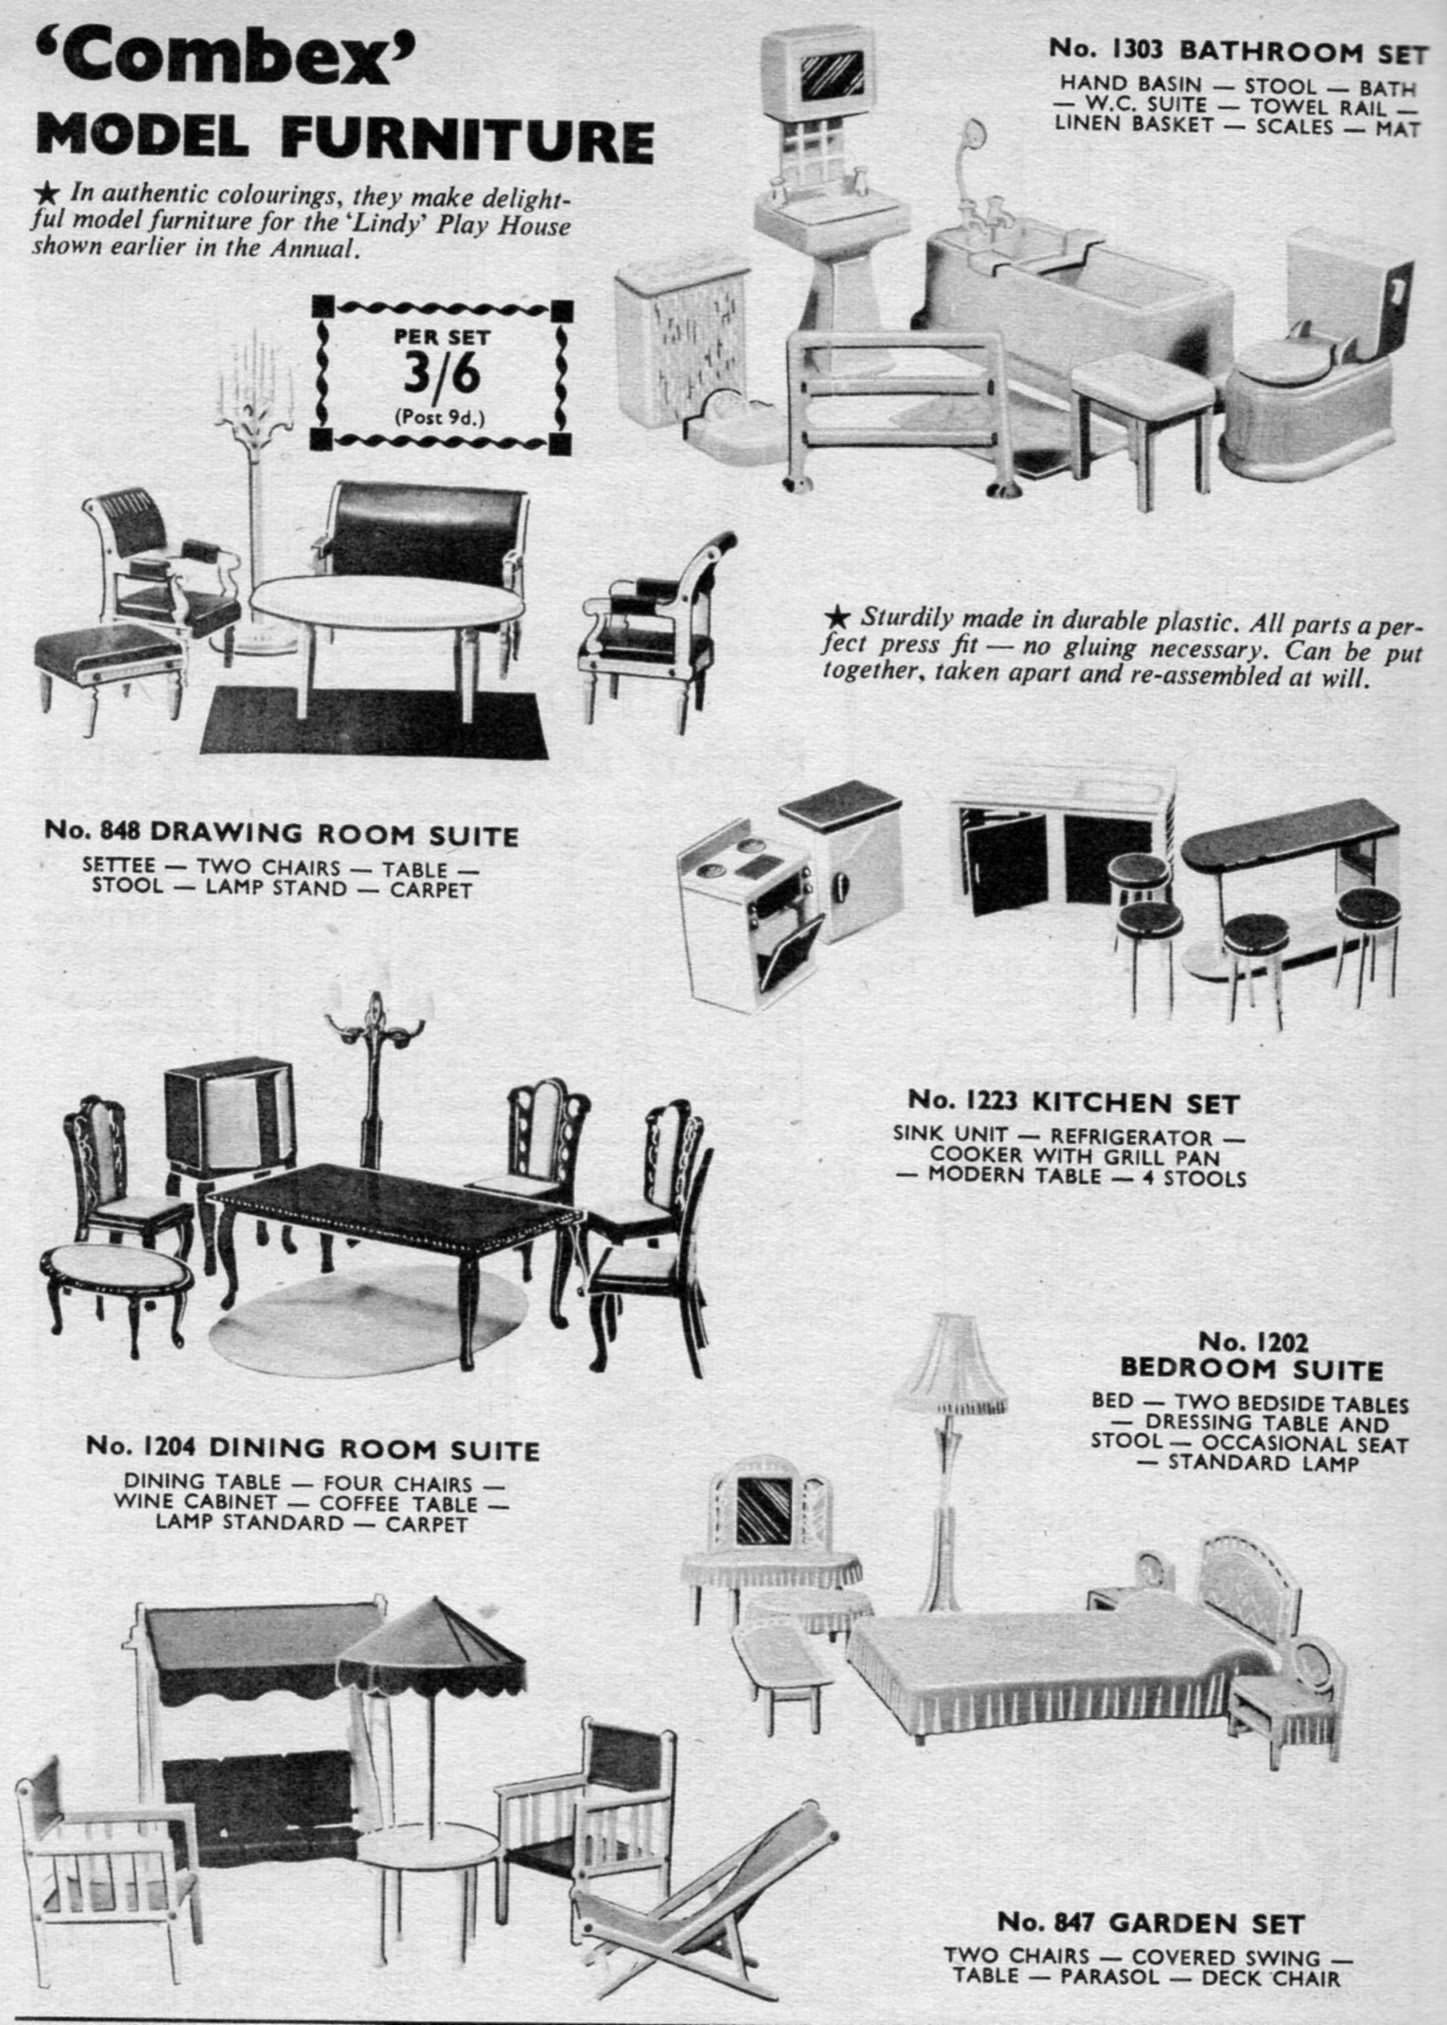 Hobbies Of Dereham Dolls House Furniture And Fittings 1946 1968 By Rebecca  Green   Dollsu0027 Houses Past U0026 Present